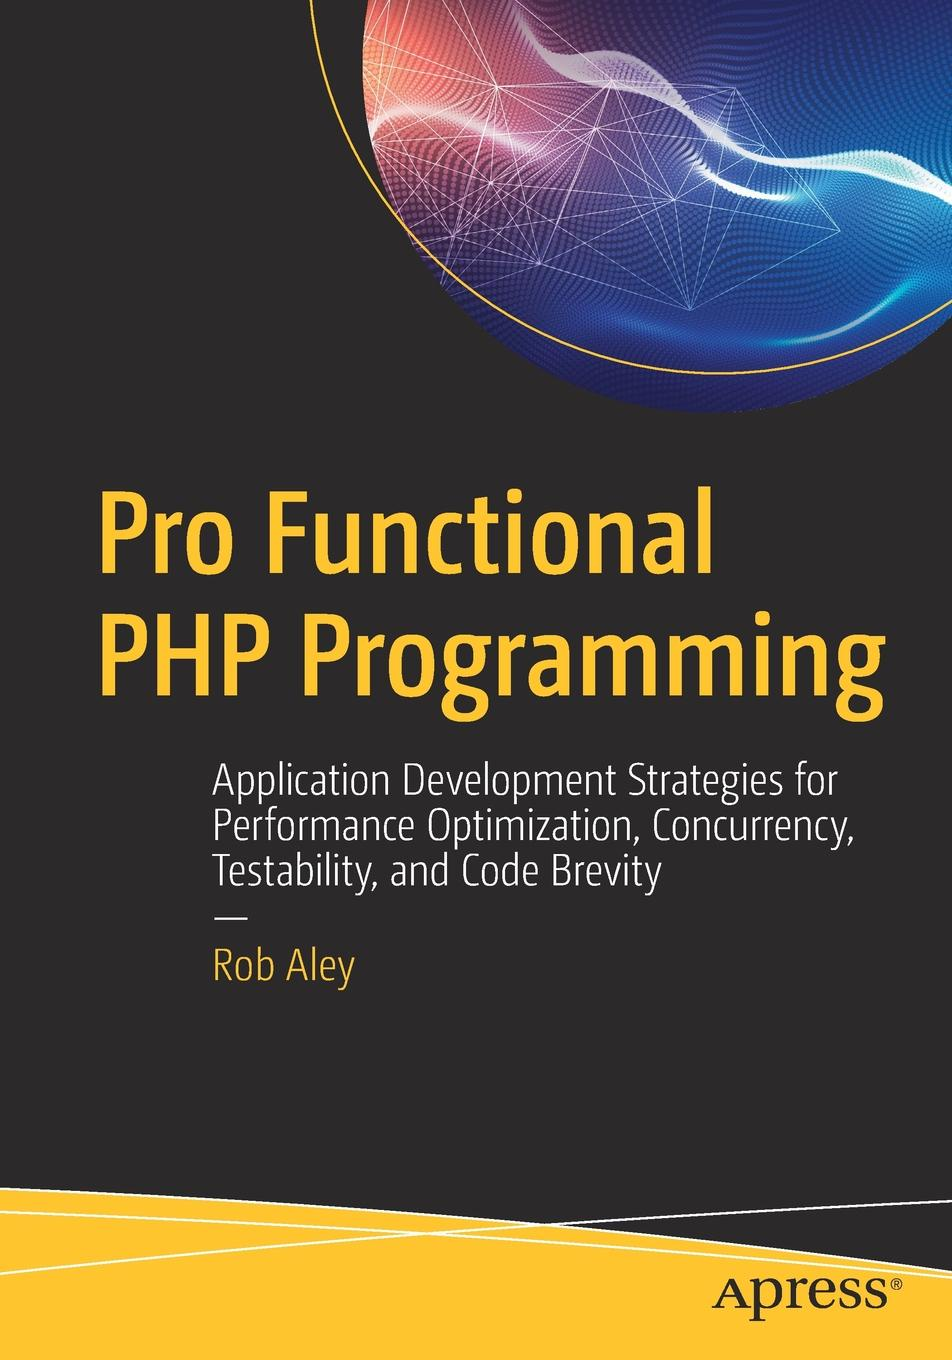 Rob Aley Pro Functional PHP Programming. Application Development Strategies for Performance Optimization, Concurrency, Testability, and Code Brevity